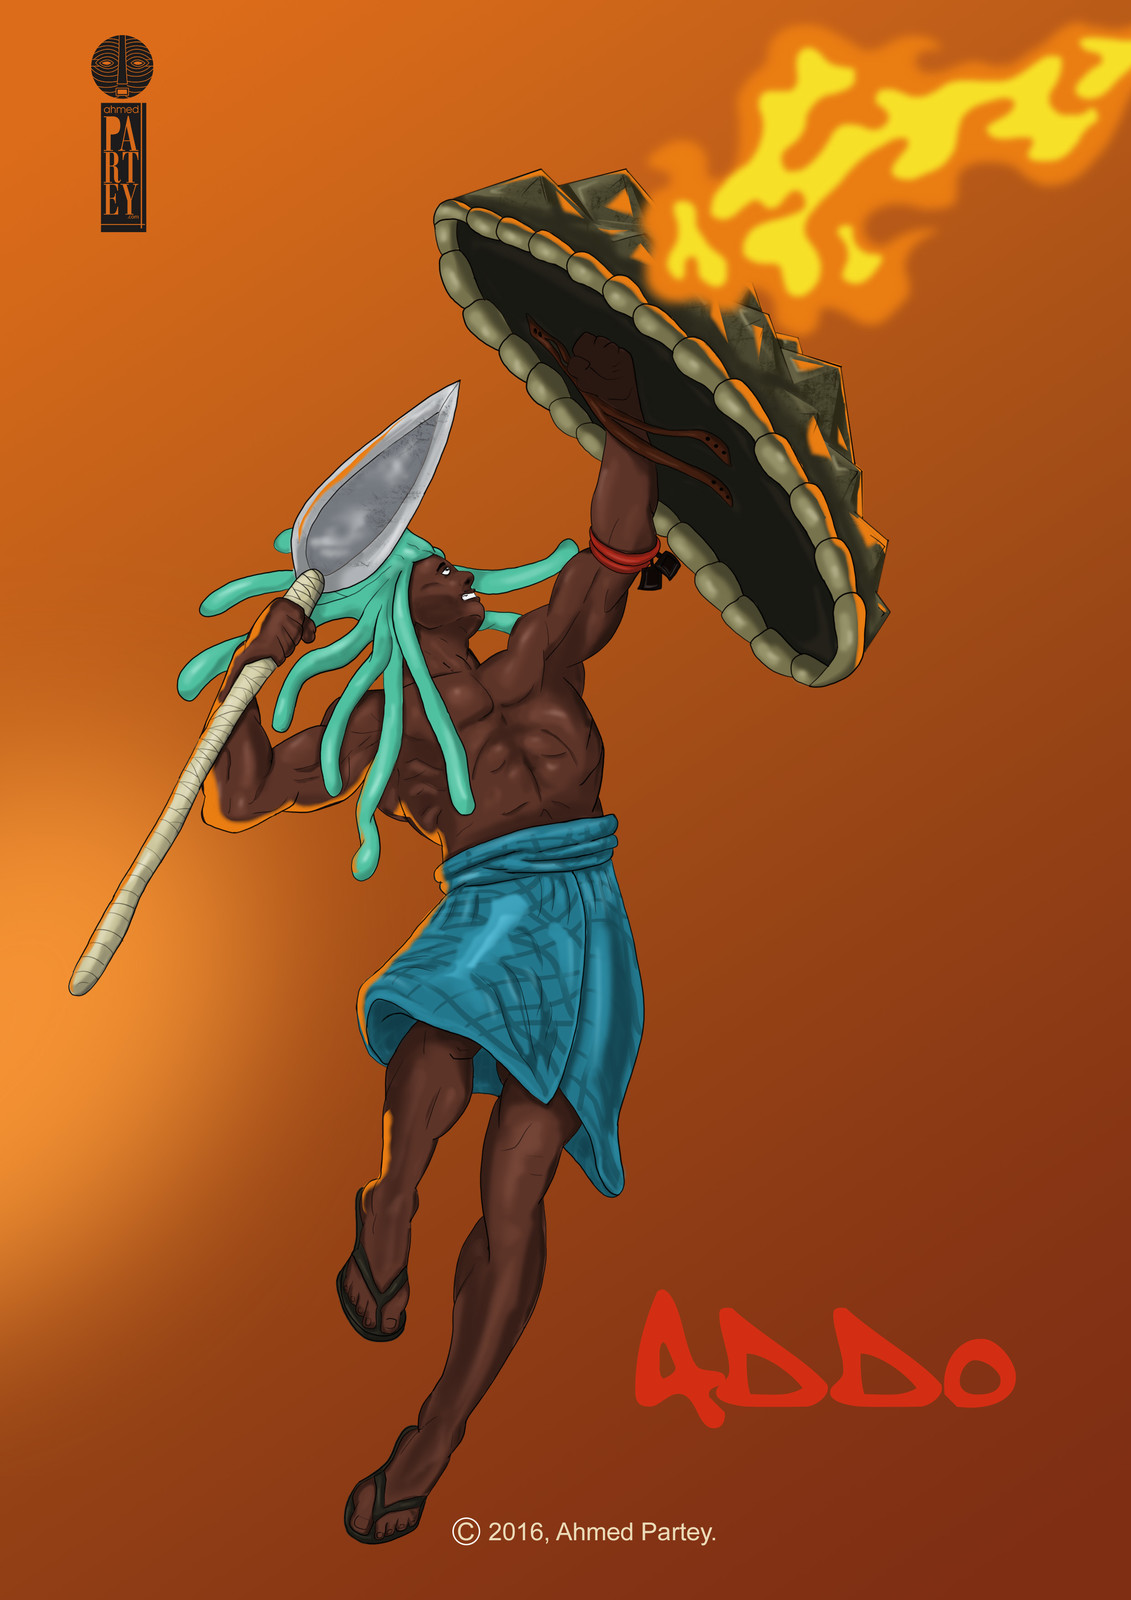 Addo, warriors from an imaginary past.